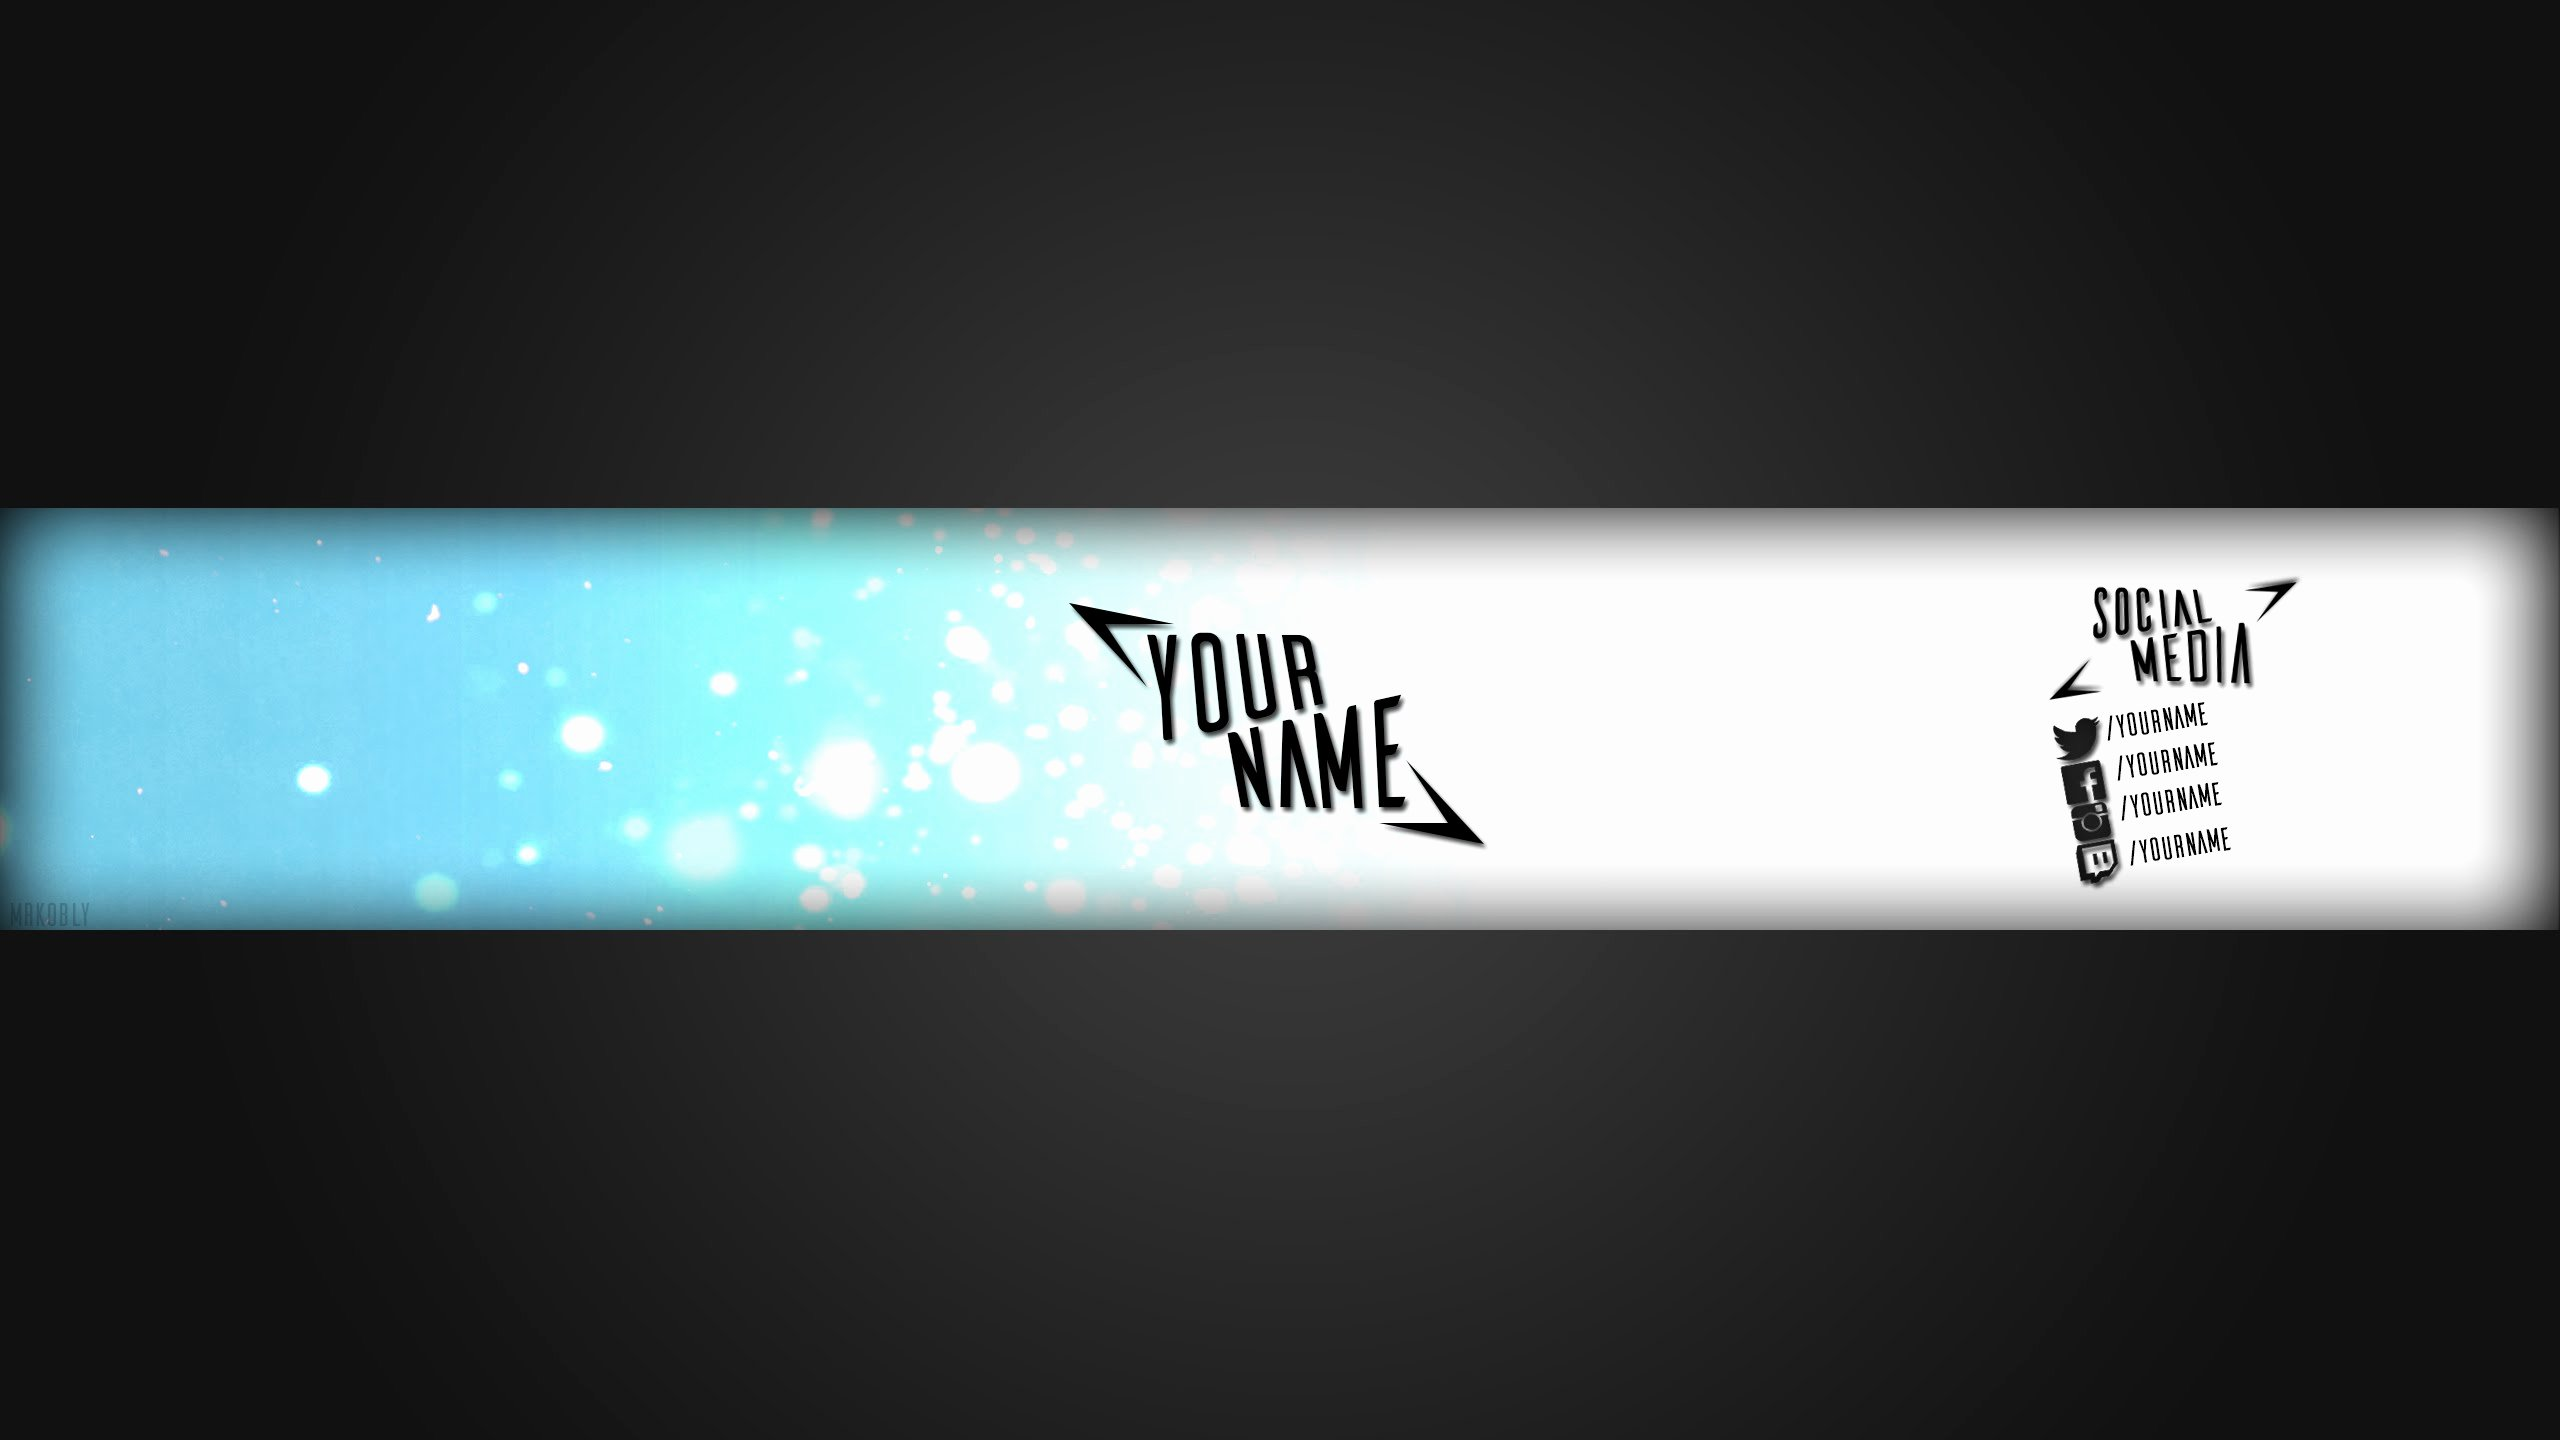 Youtube Banner Template Photoshop Inspirational 28 Of Plain Banner Template